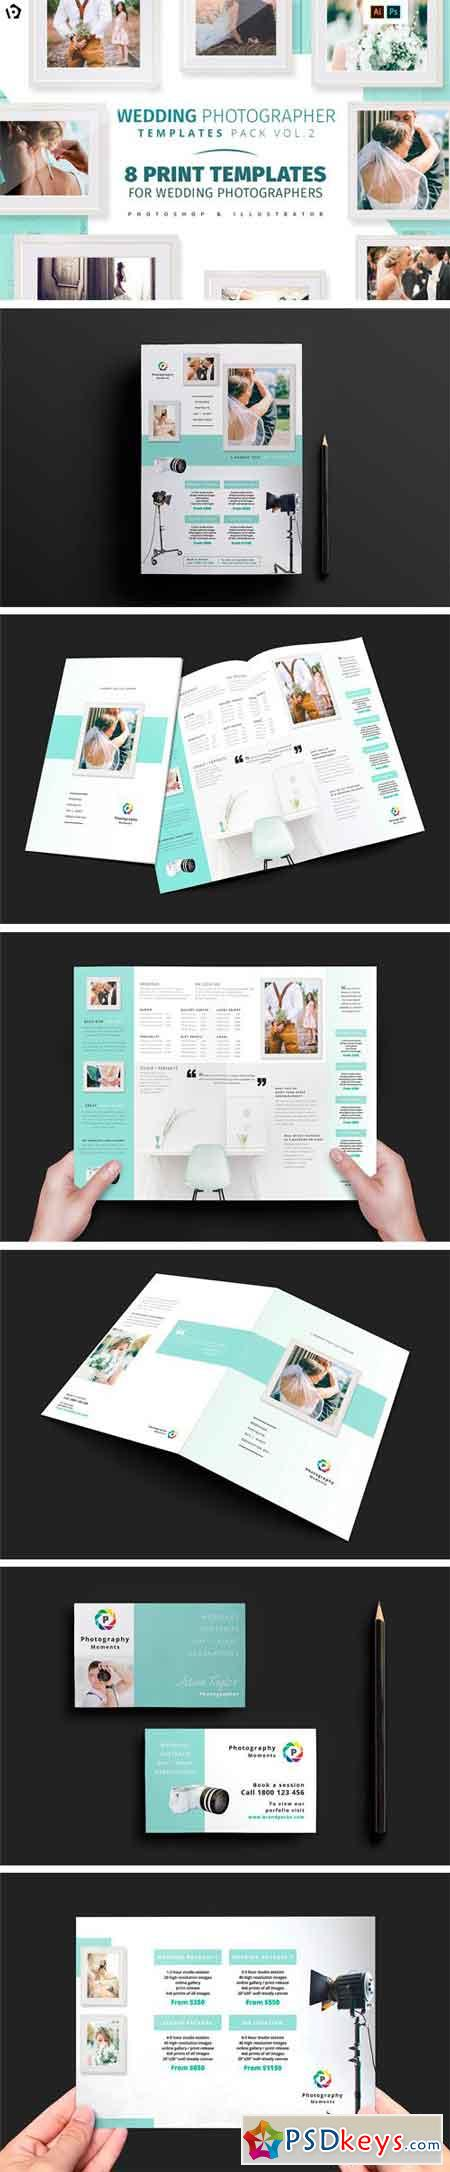 Wedding Photography Templates Pack 2 1347994